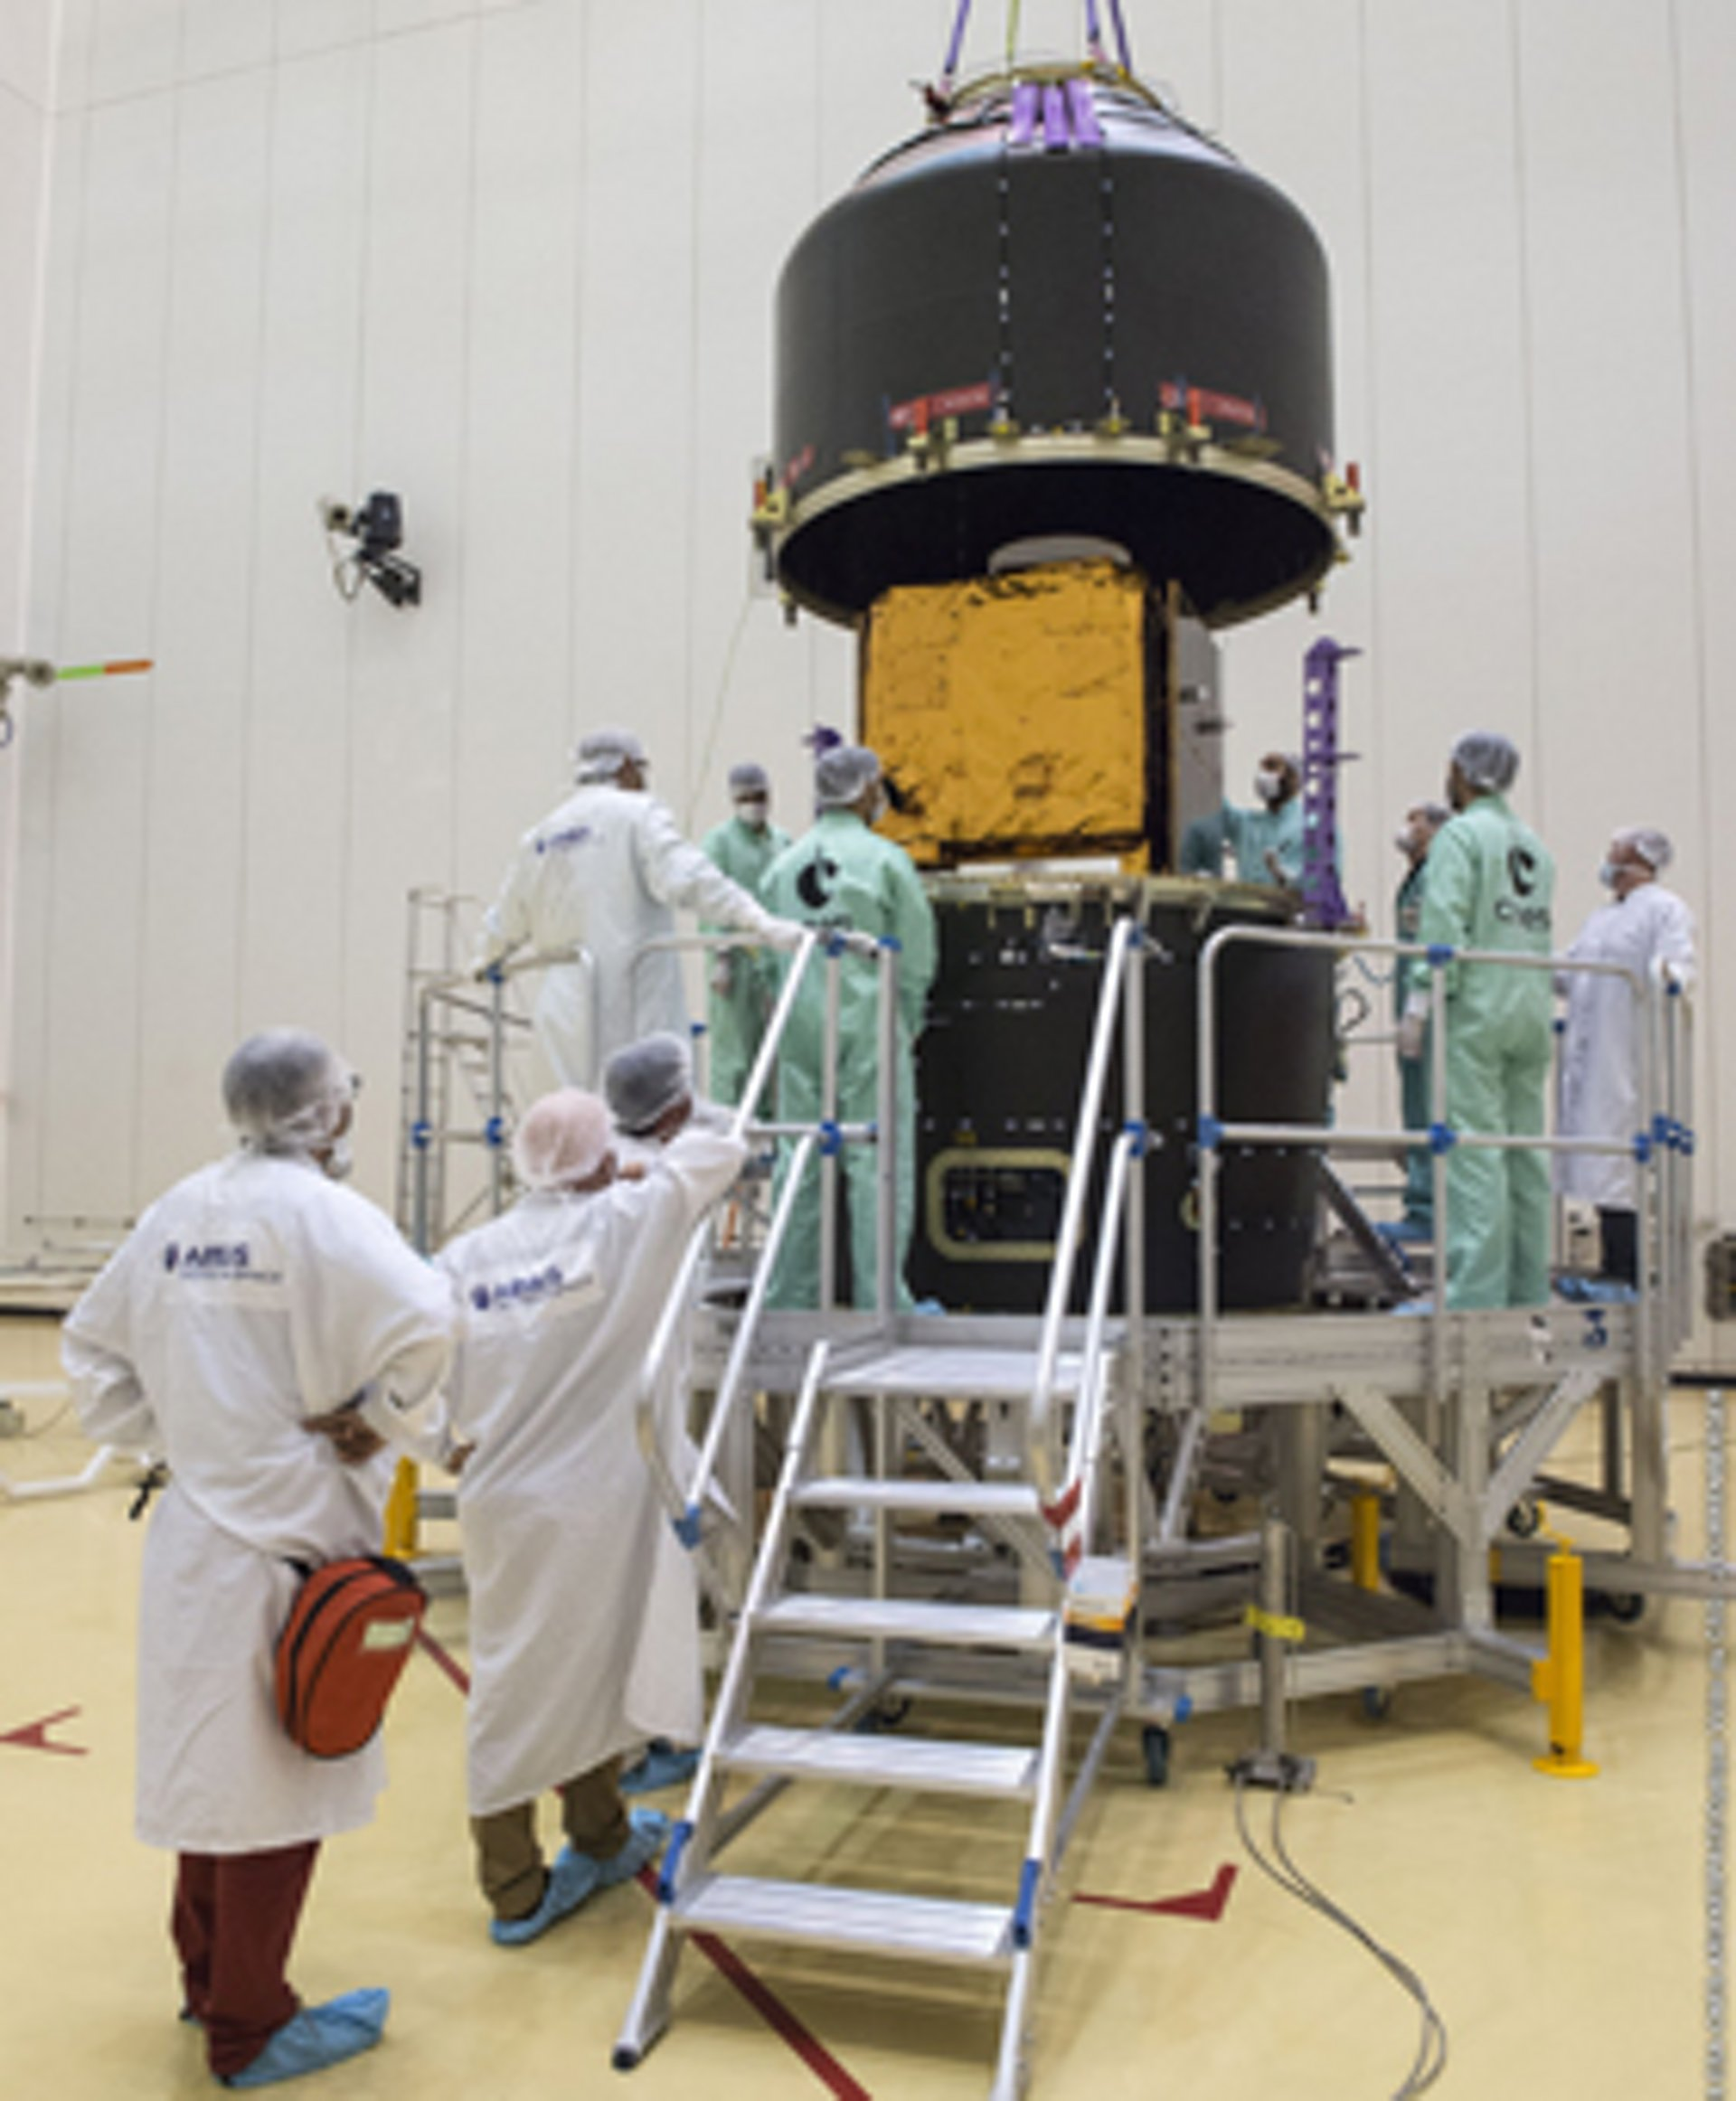 PerúSAT-1 satellite prepared for the launch at Kourou